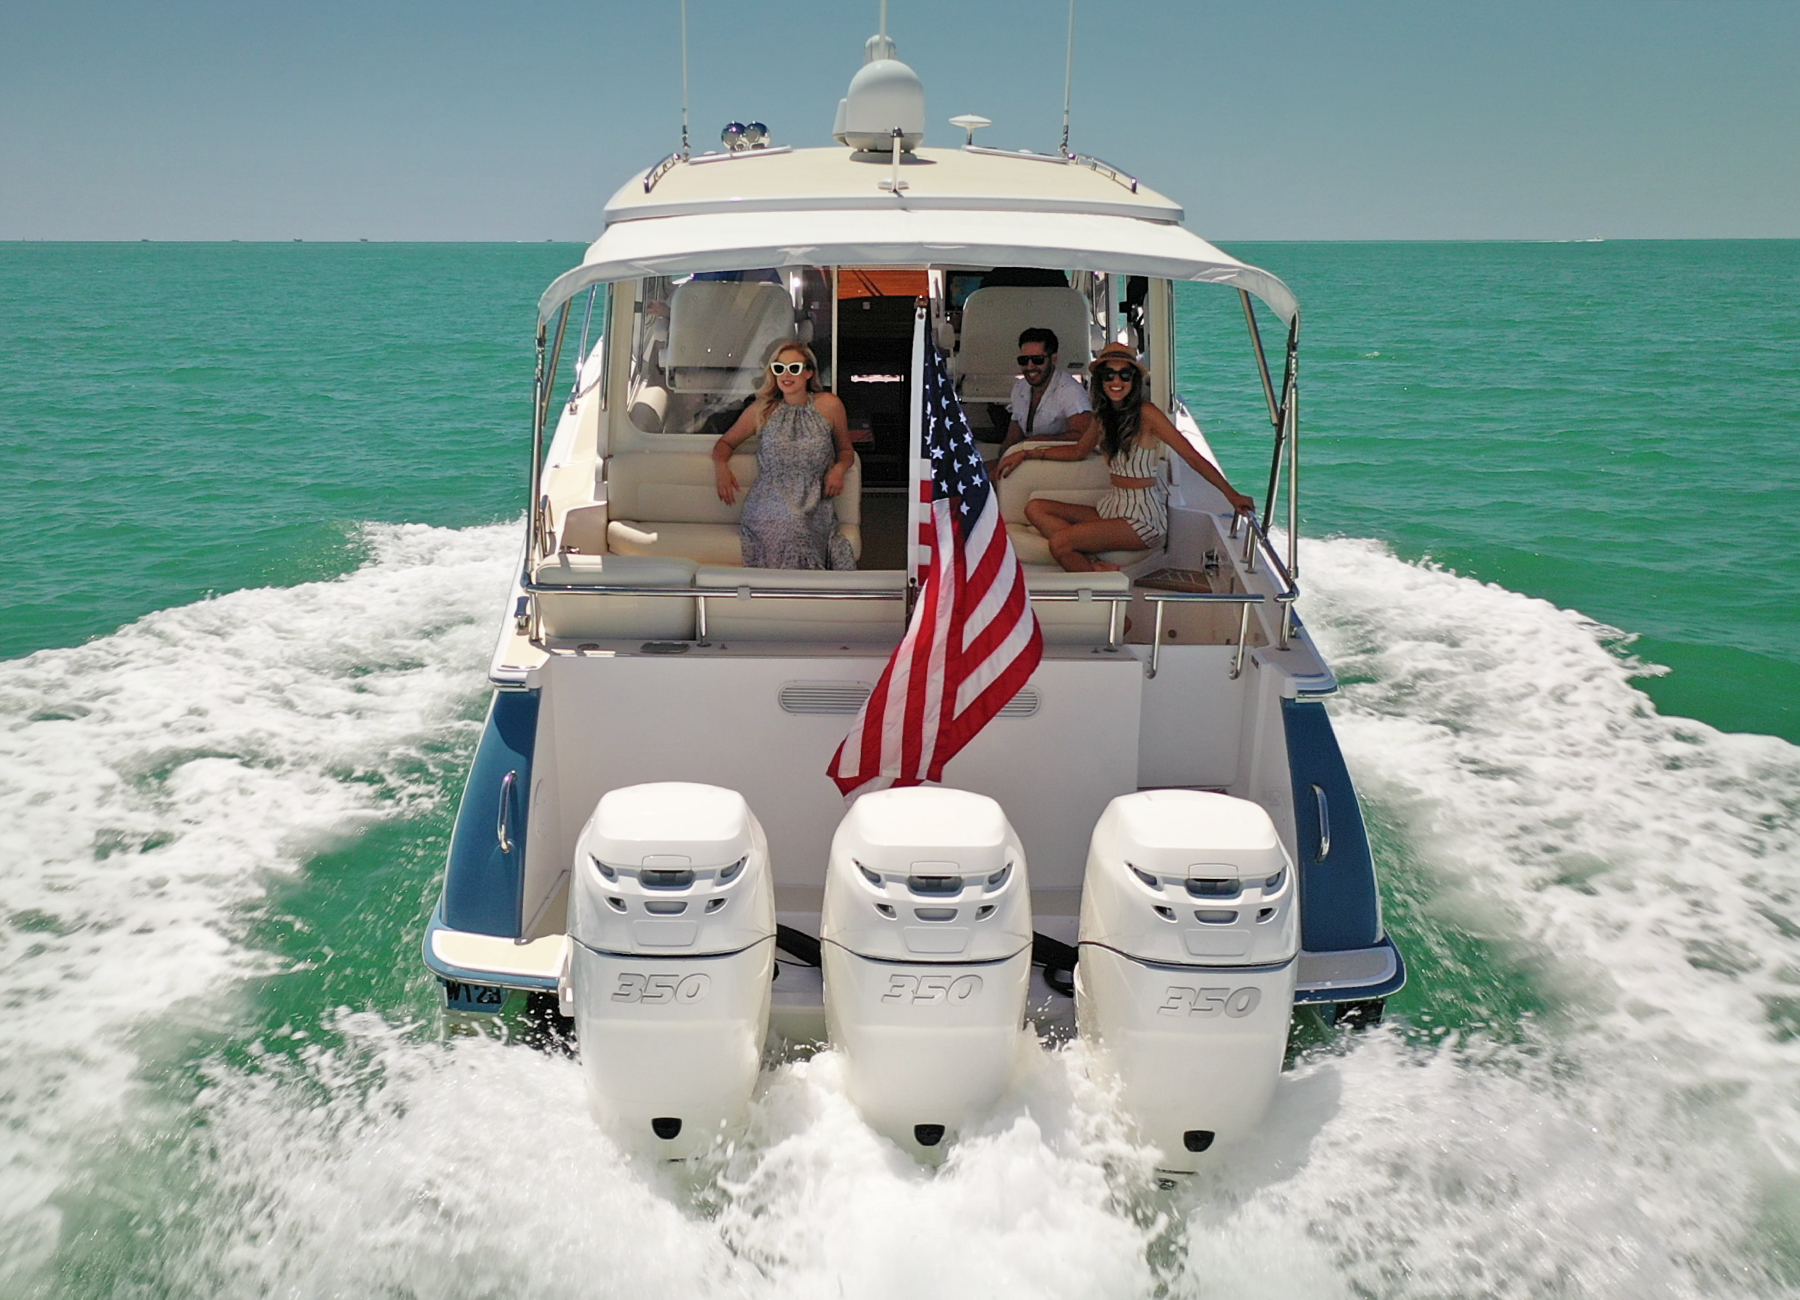 Triple Outboard Engines On MJM 43z Yacht